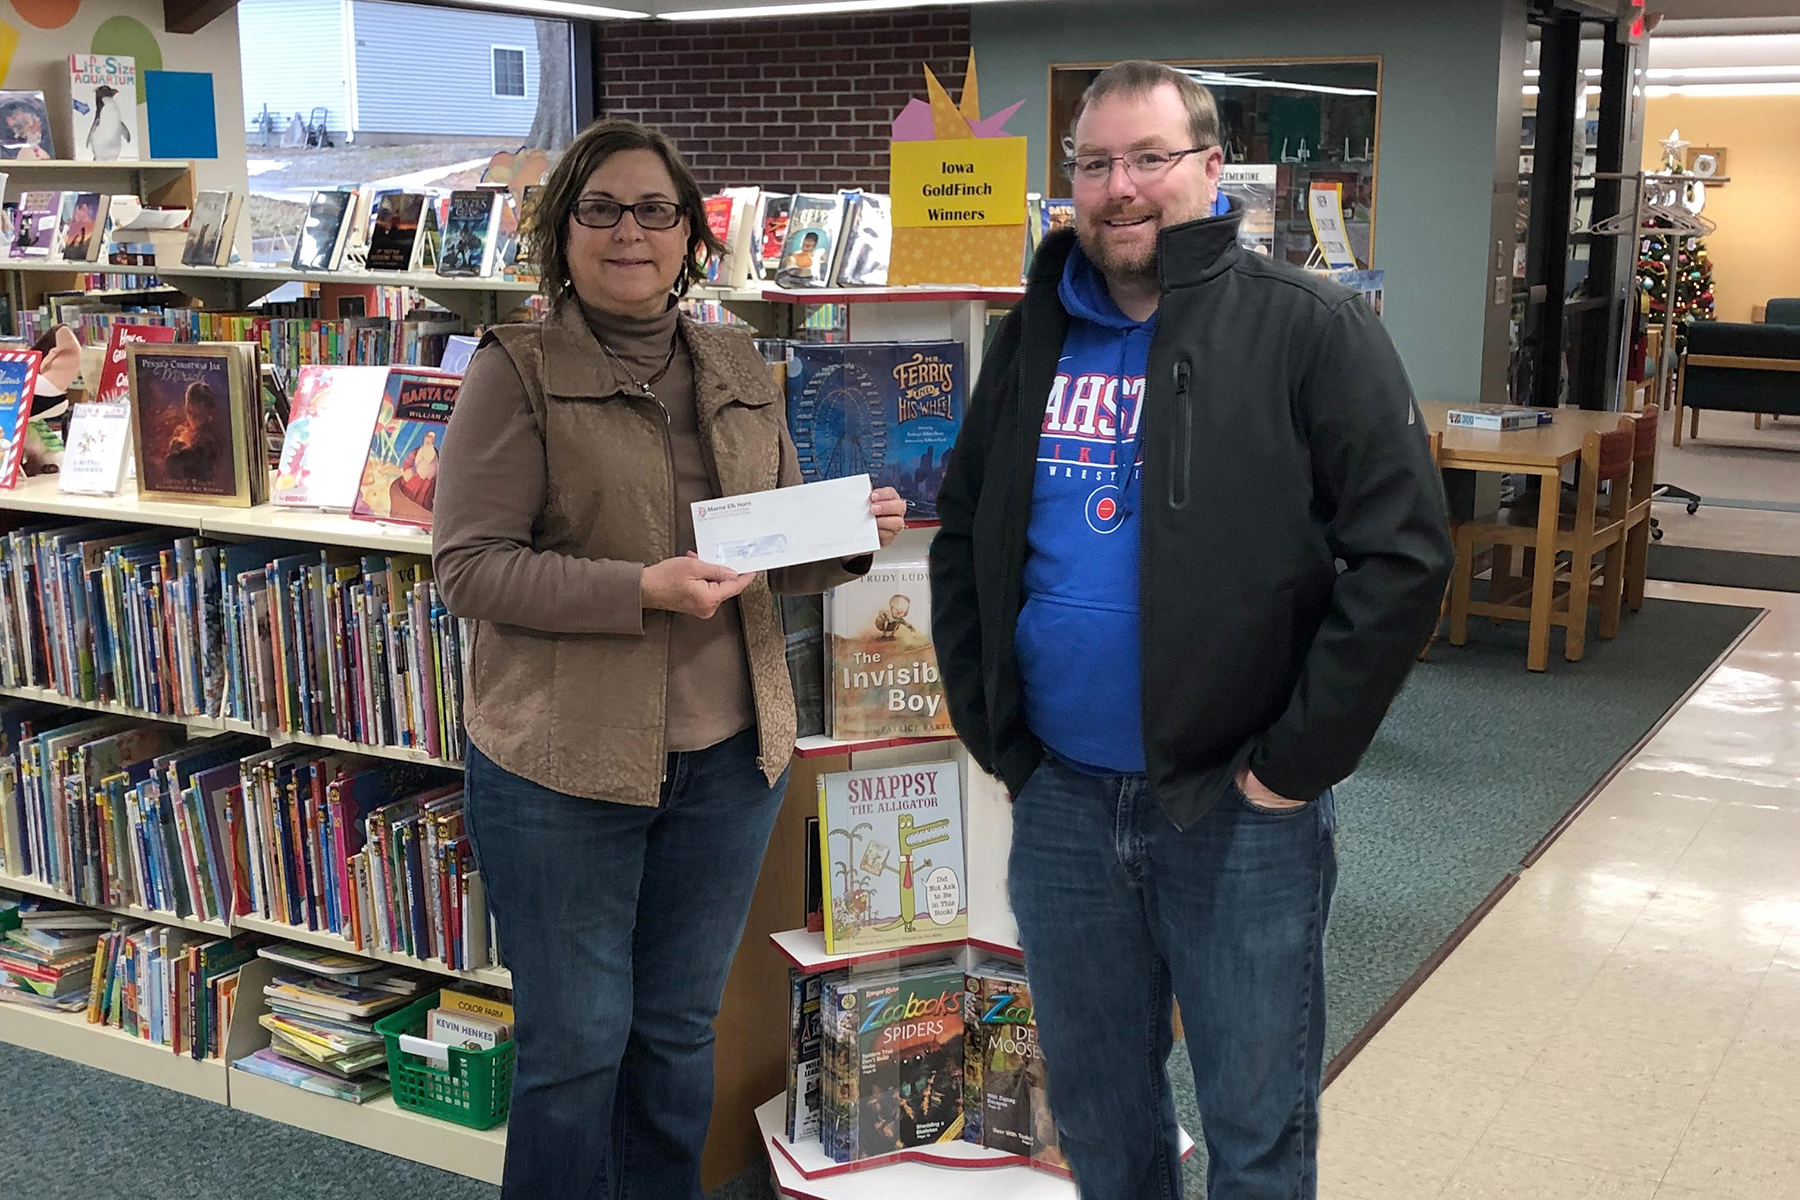 METC's Rob Sampson presenting to Serena Riesgaard, representing the Avoca Library.